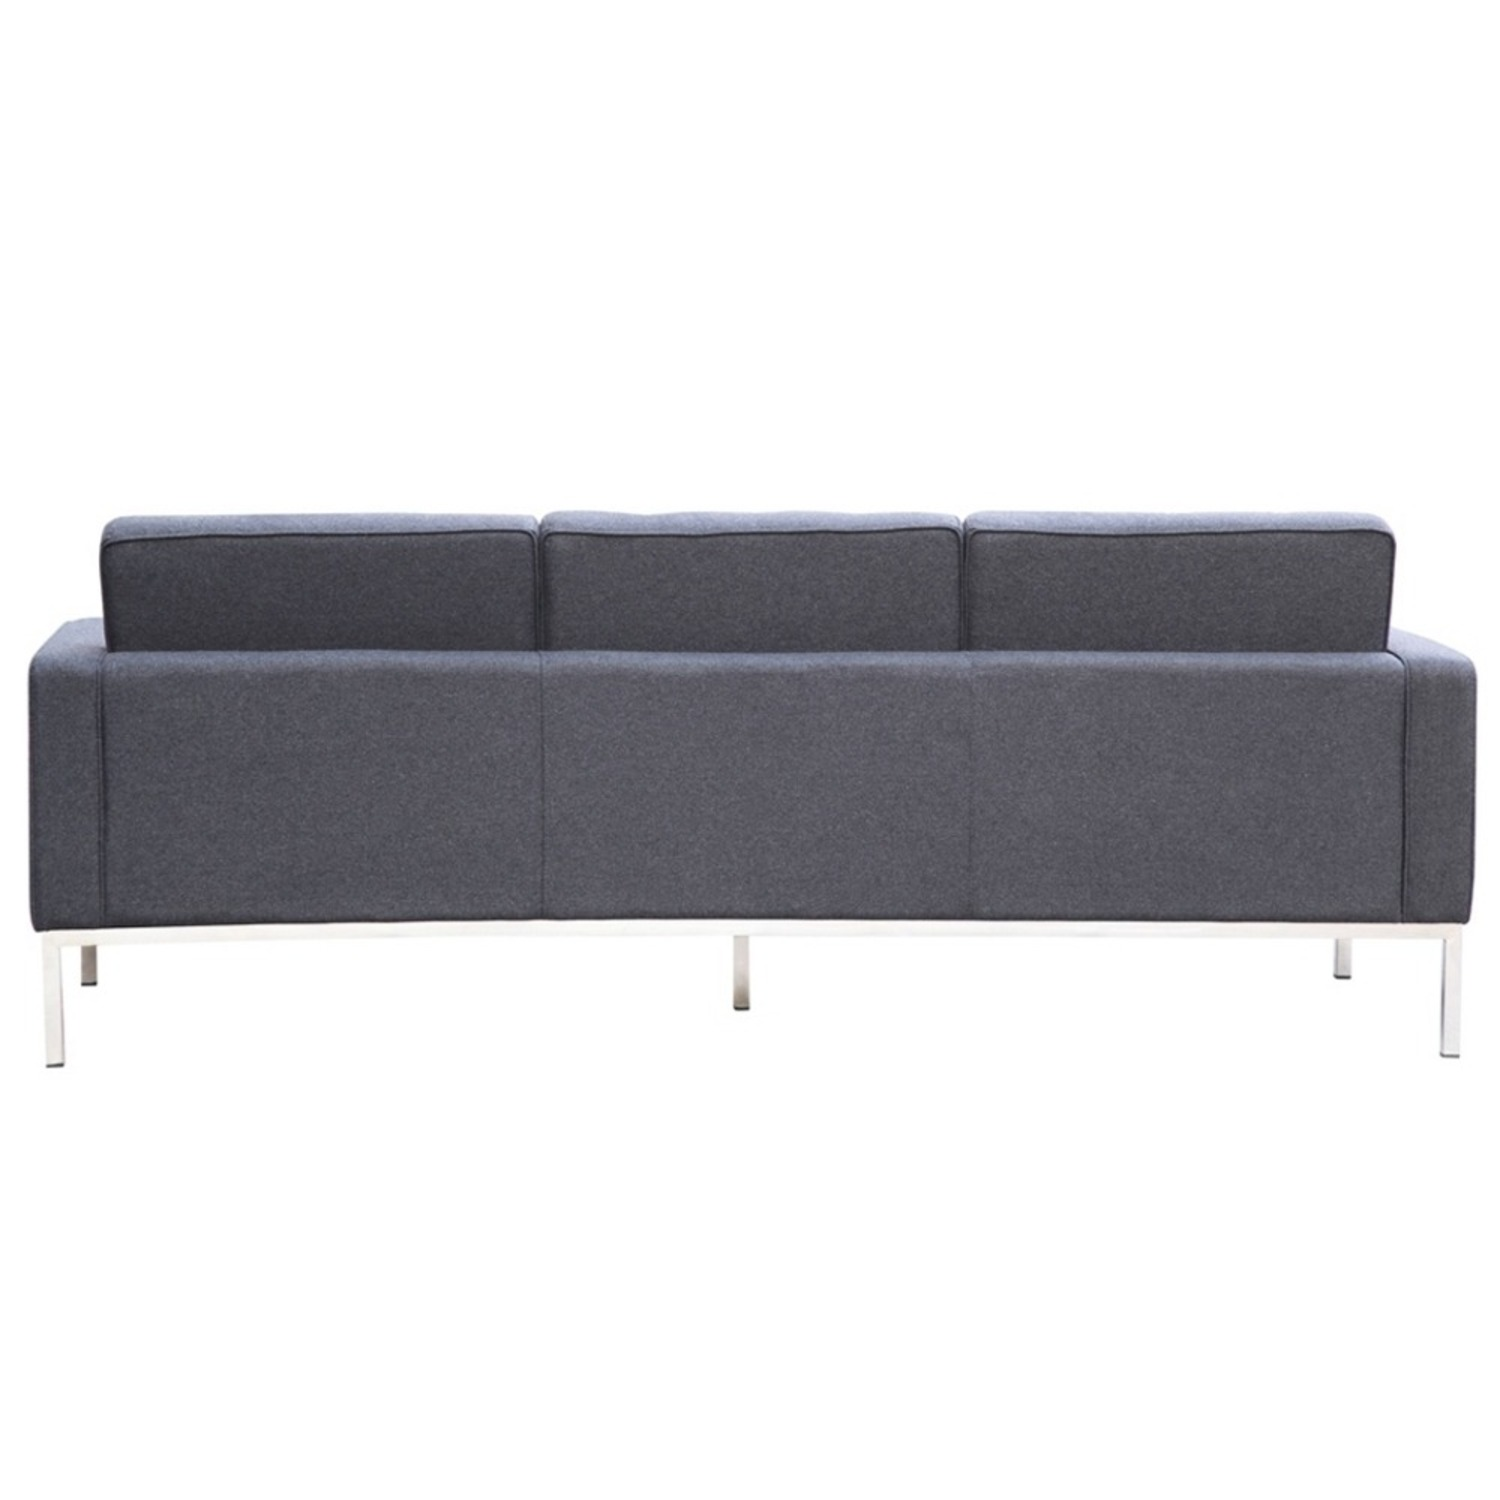 Contemporary Sofa In Gray Wool Fabric - image-2